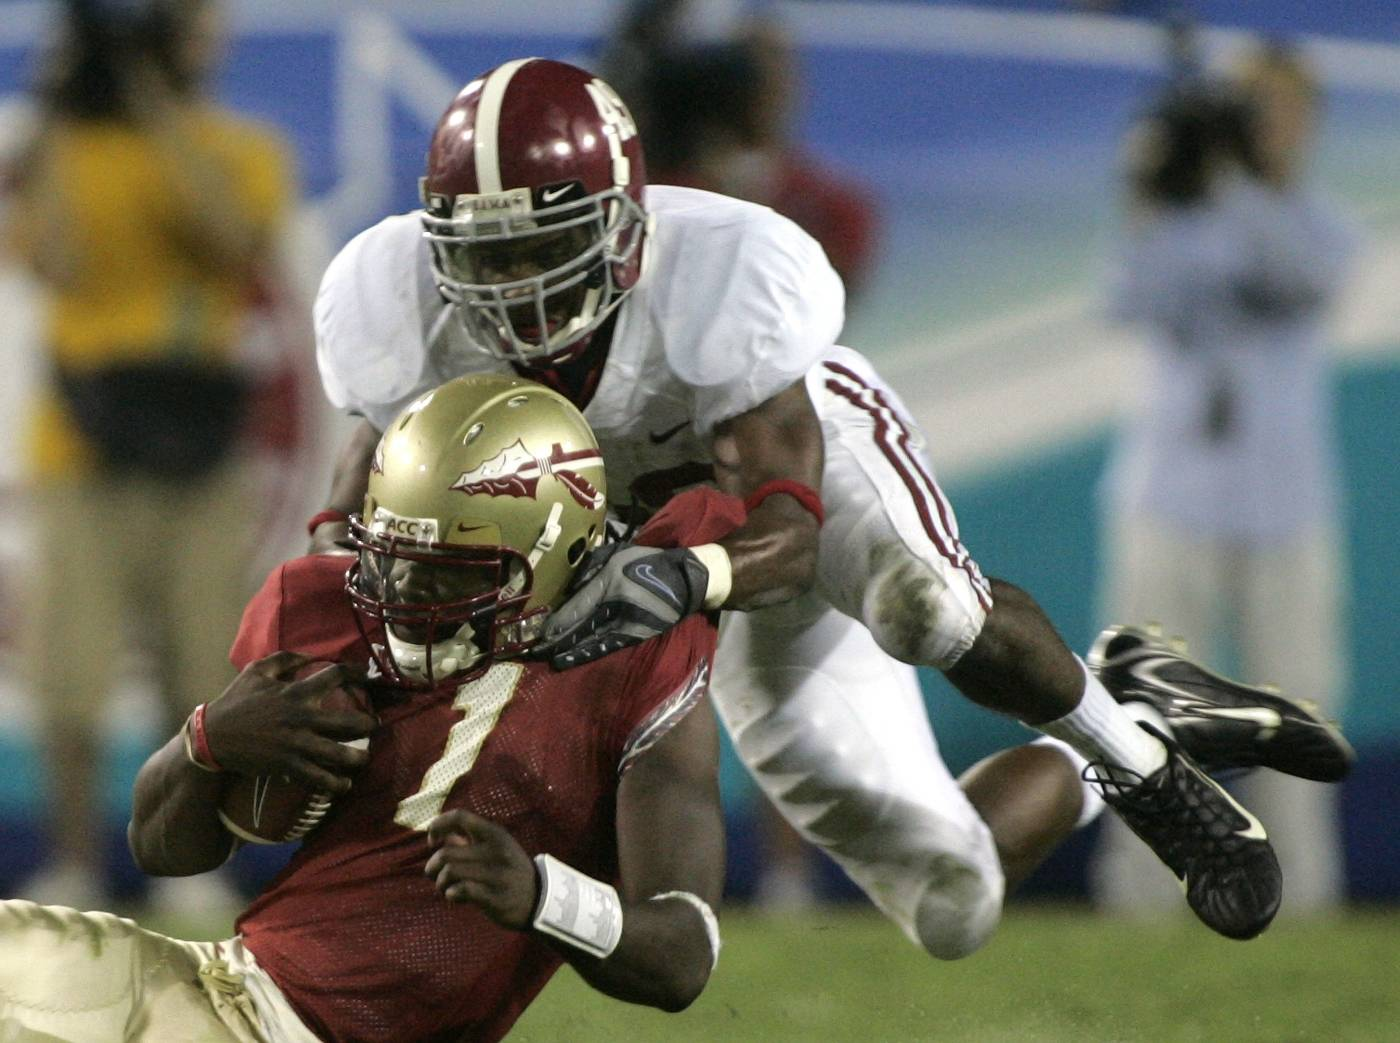 Florida State quarterback Xavier Lee, left, is tackled by Alabama's Rashad Johnson during the fourth quarter of a football game Saturday, Sept. 29, 2007, in Jacksonville, Fla. FSU won 21-14. (AP Photo/Phil Coale)